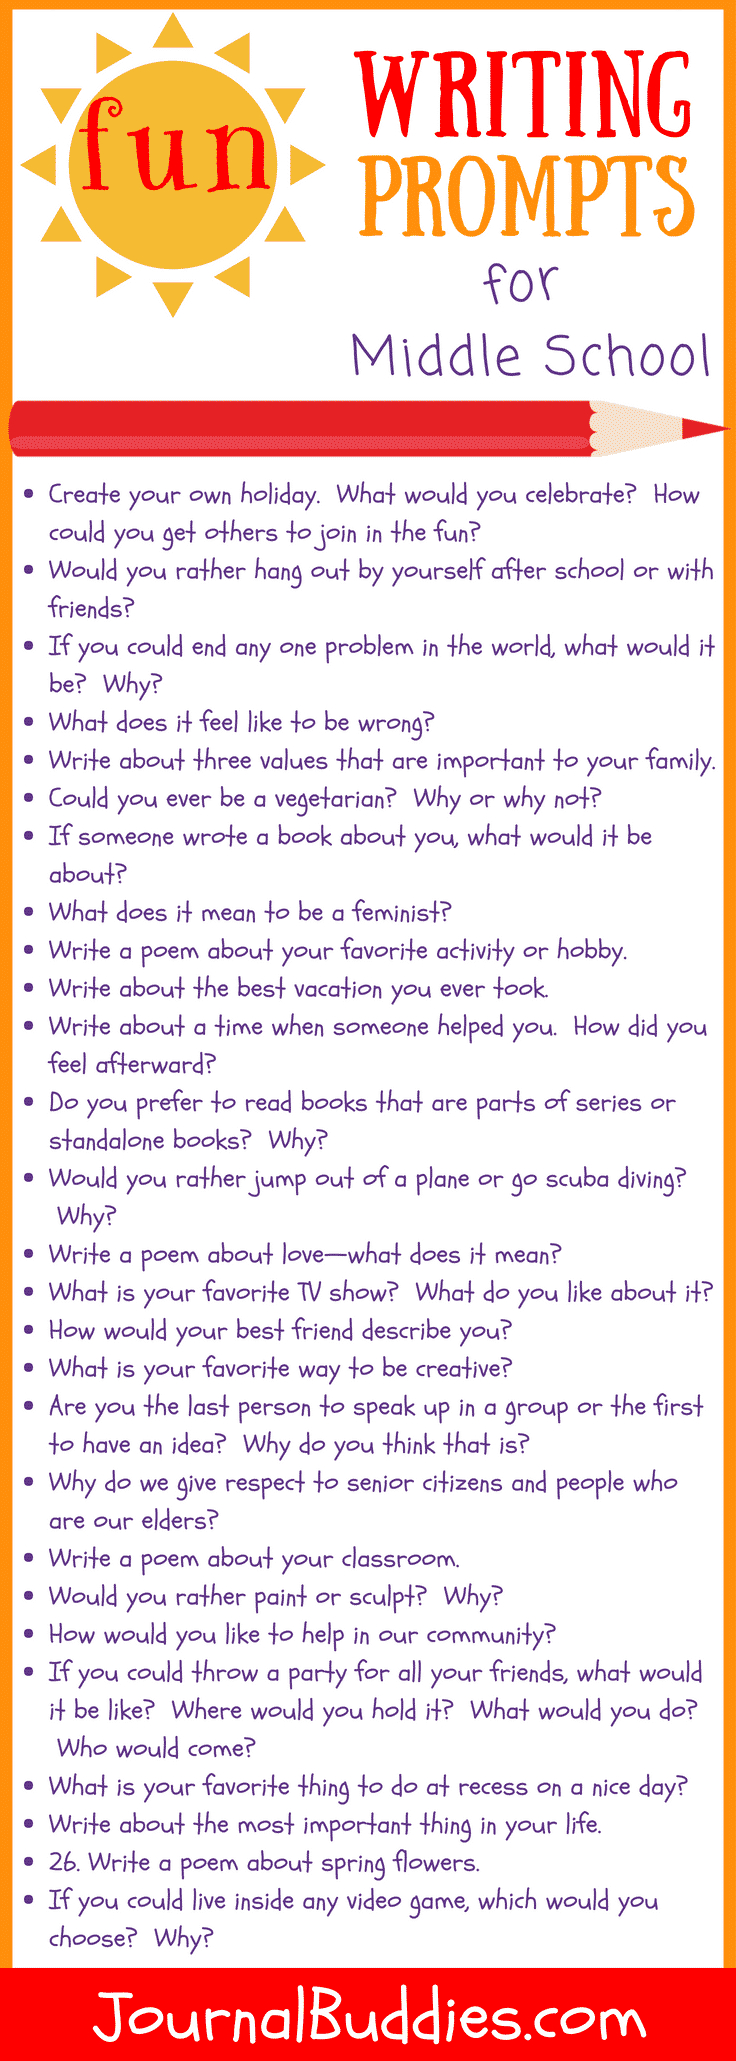 31 Fun Writing Prompts For Middle School • Journalbuddies - Free Printable Writing Prompts For Middle School